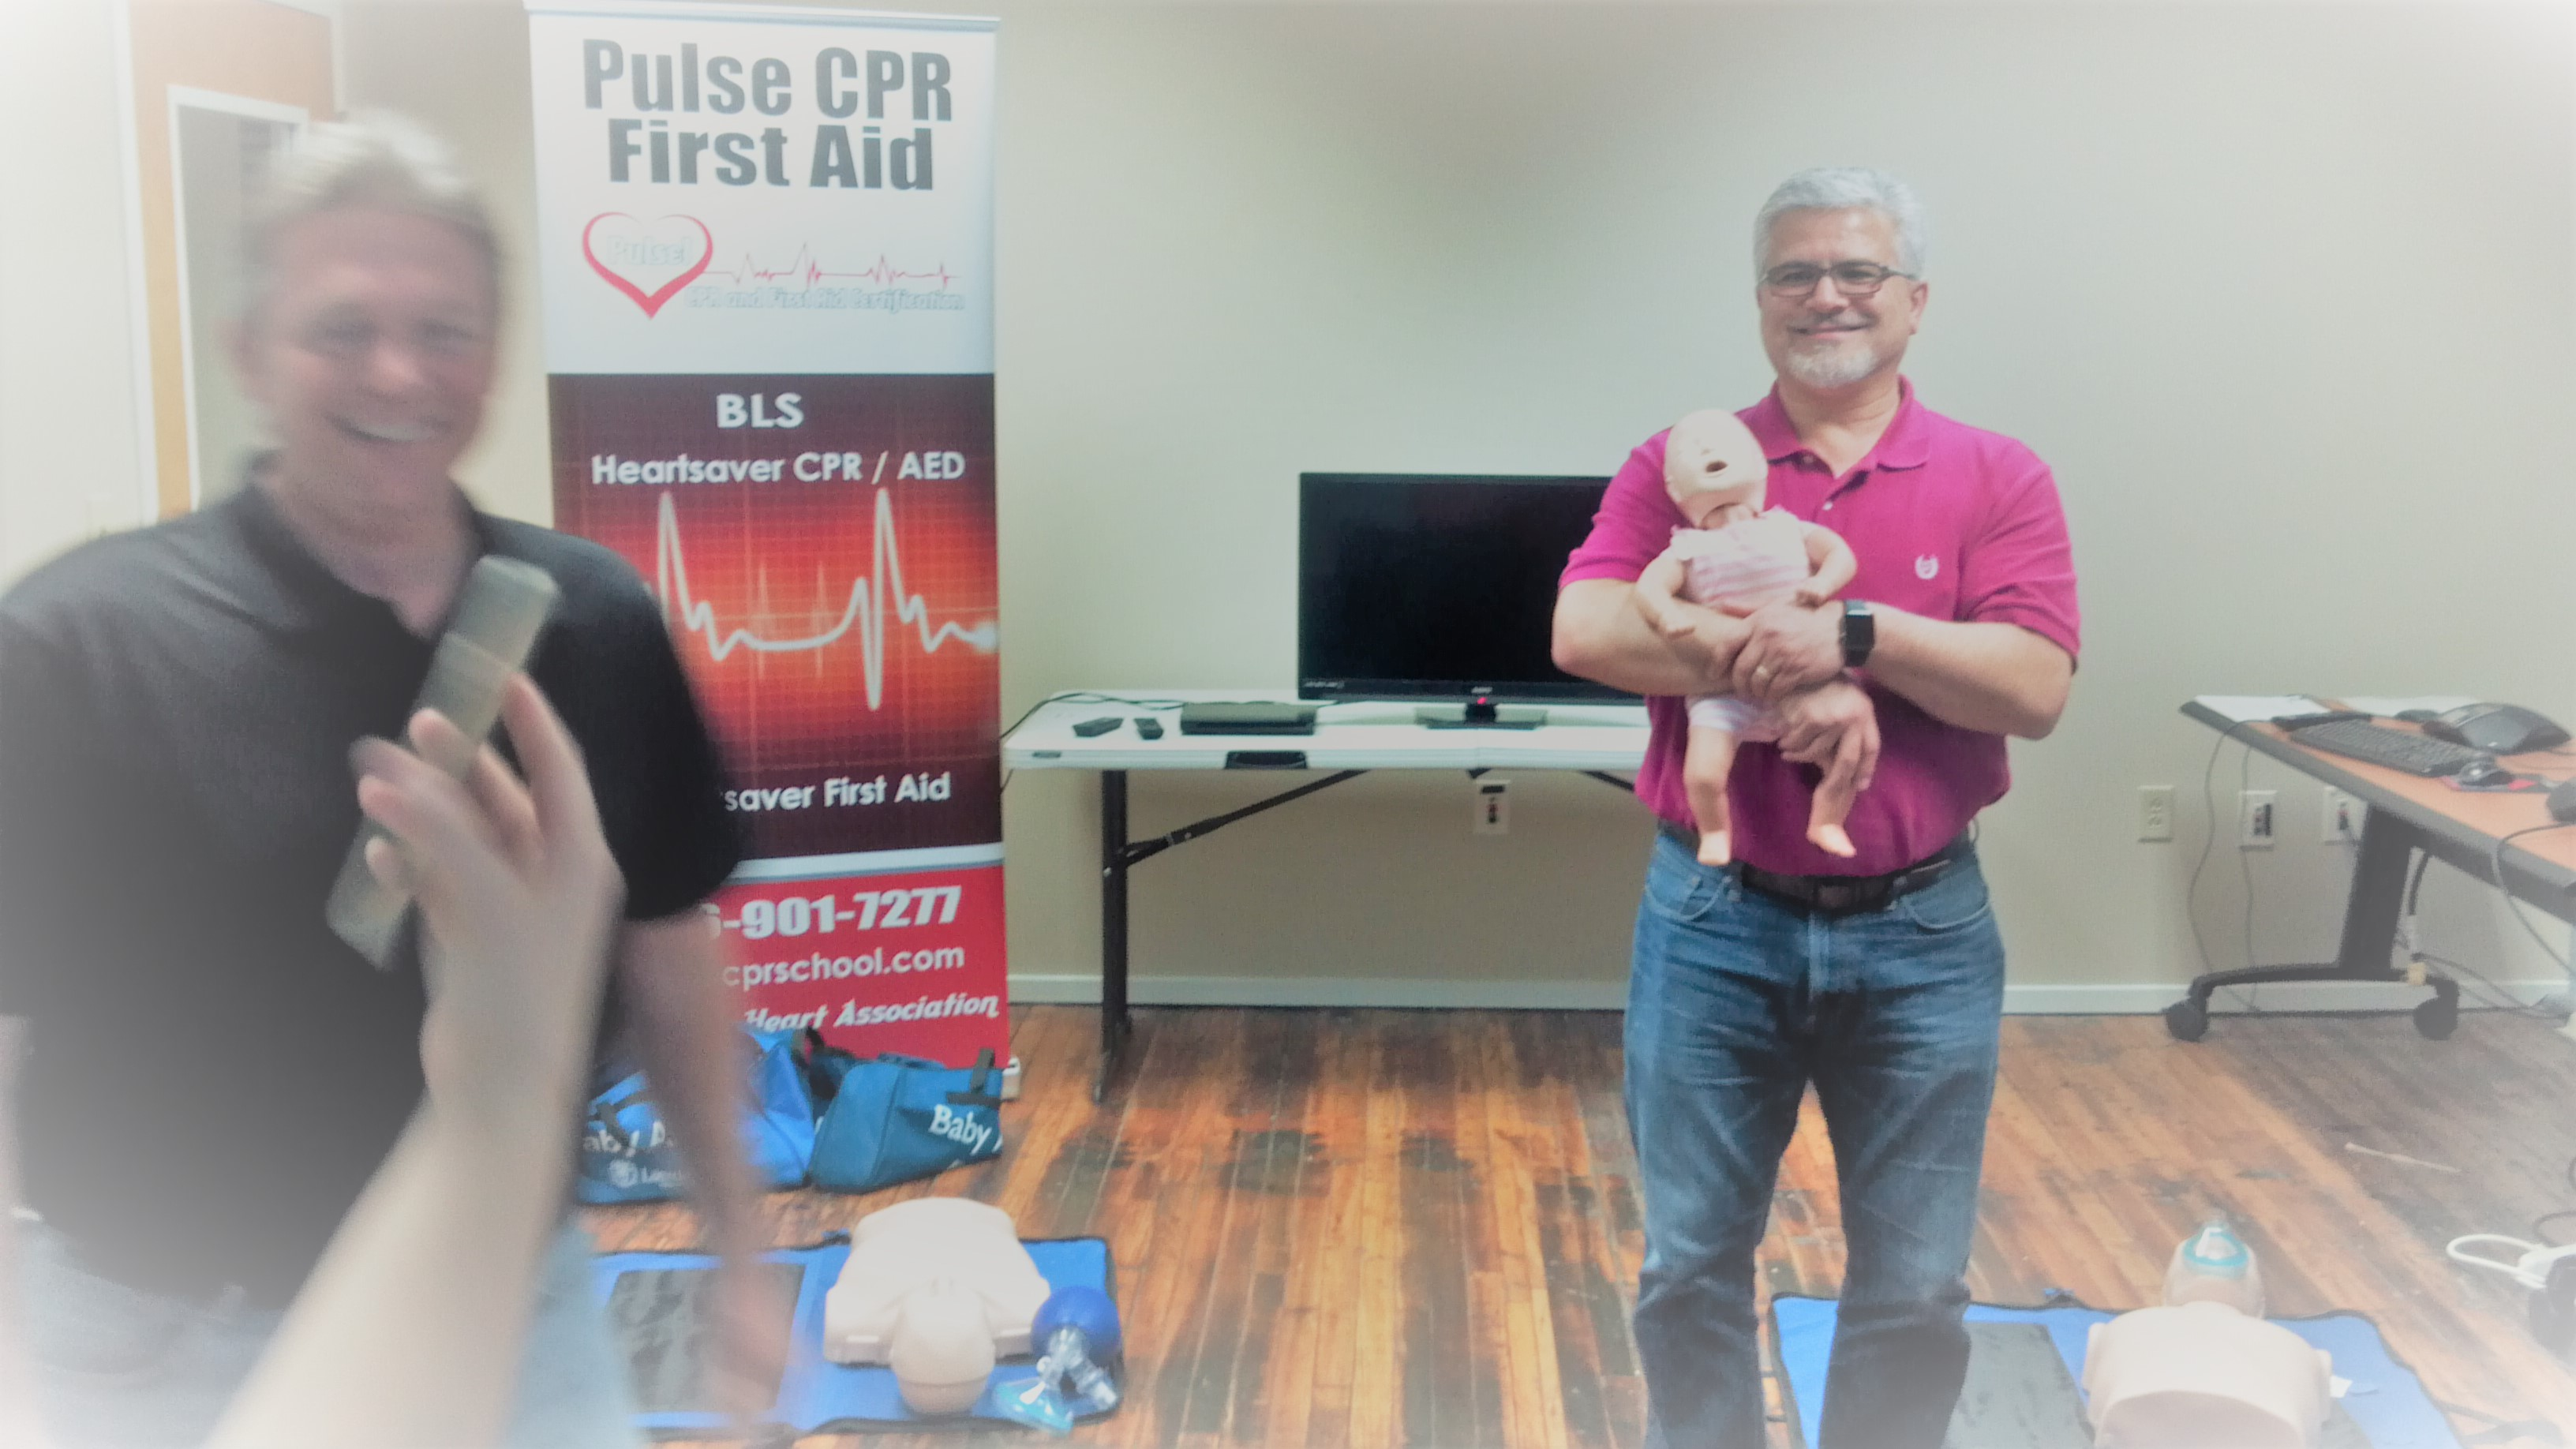 Corporate CPR